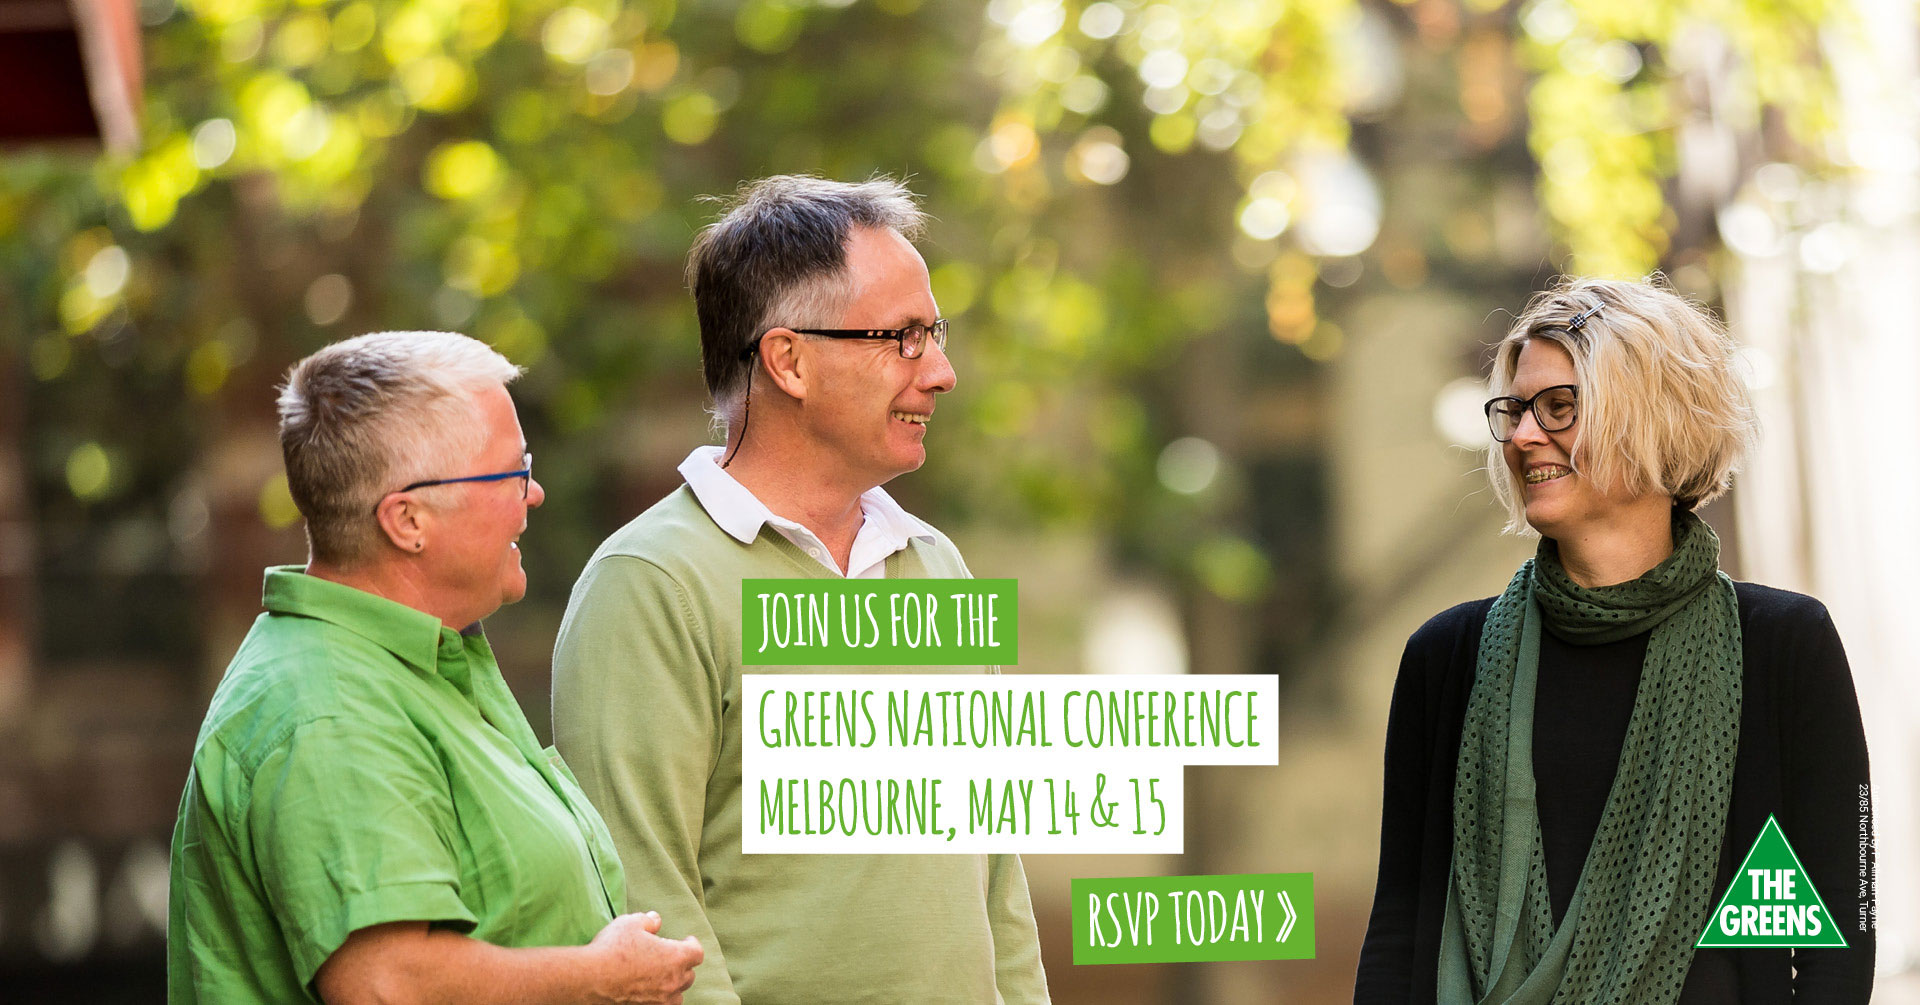 National Conference May 2016: RSVP today